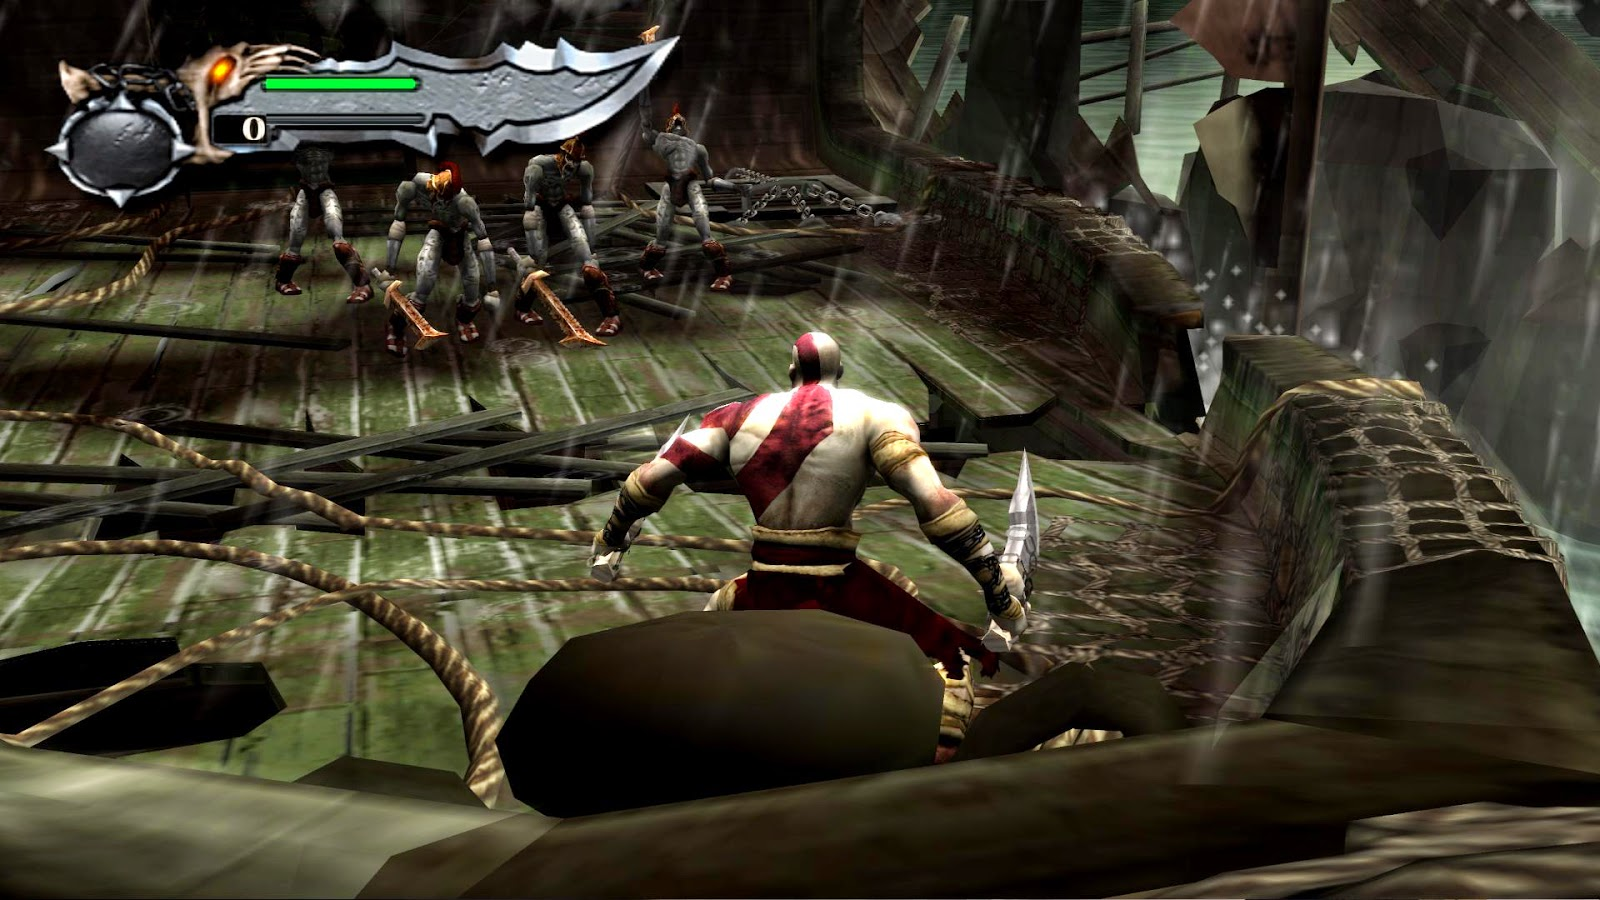 God Of War 1 Pc Game 200 Mb Highly Compressed Free